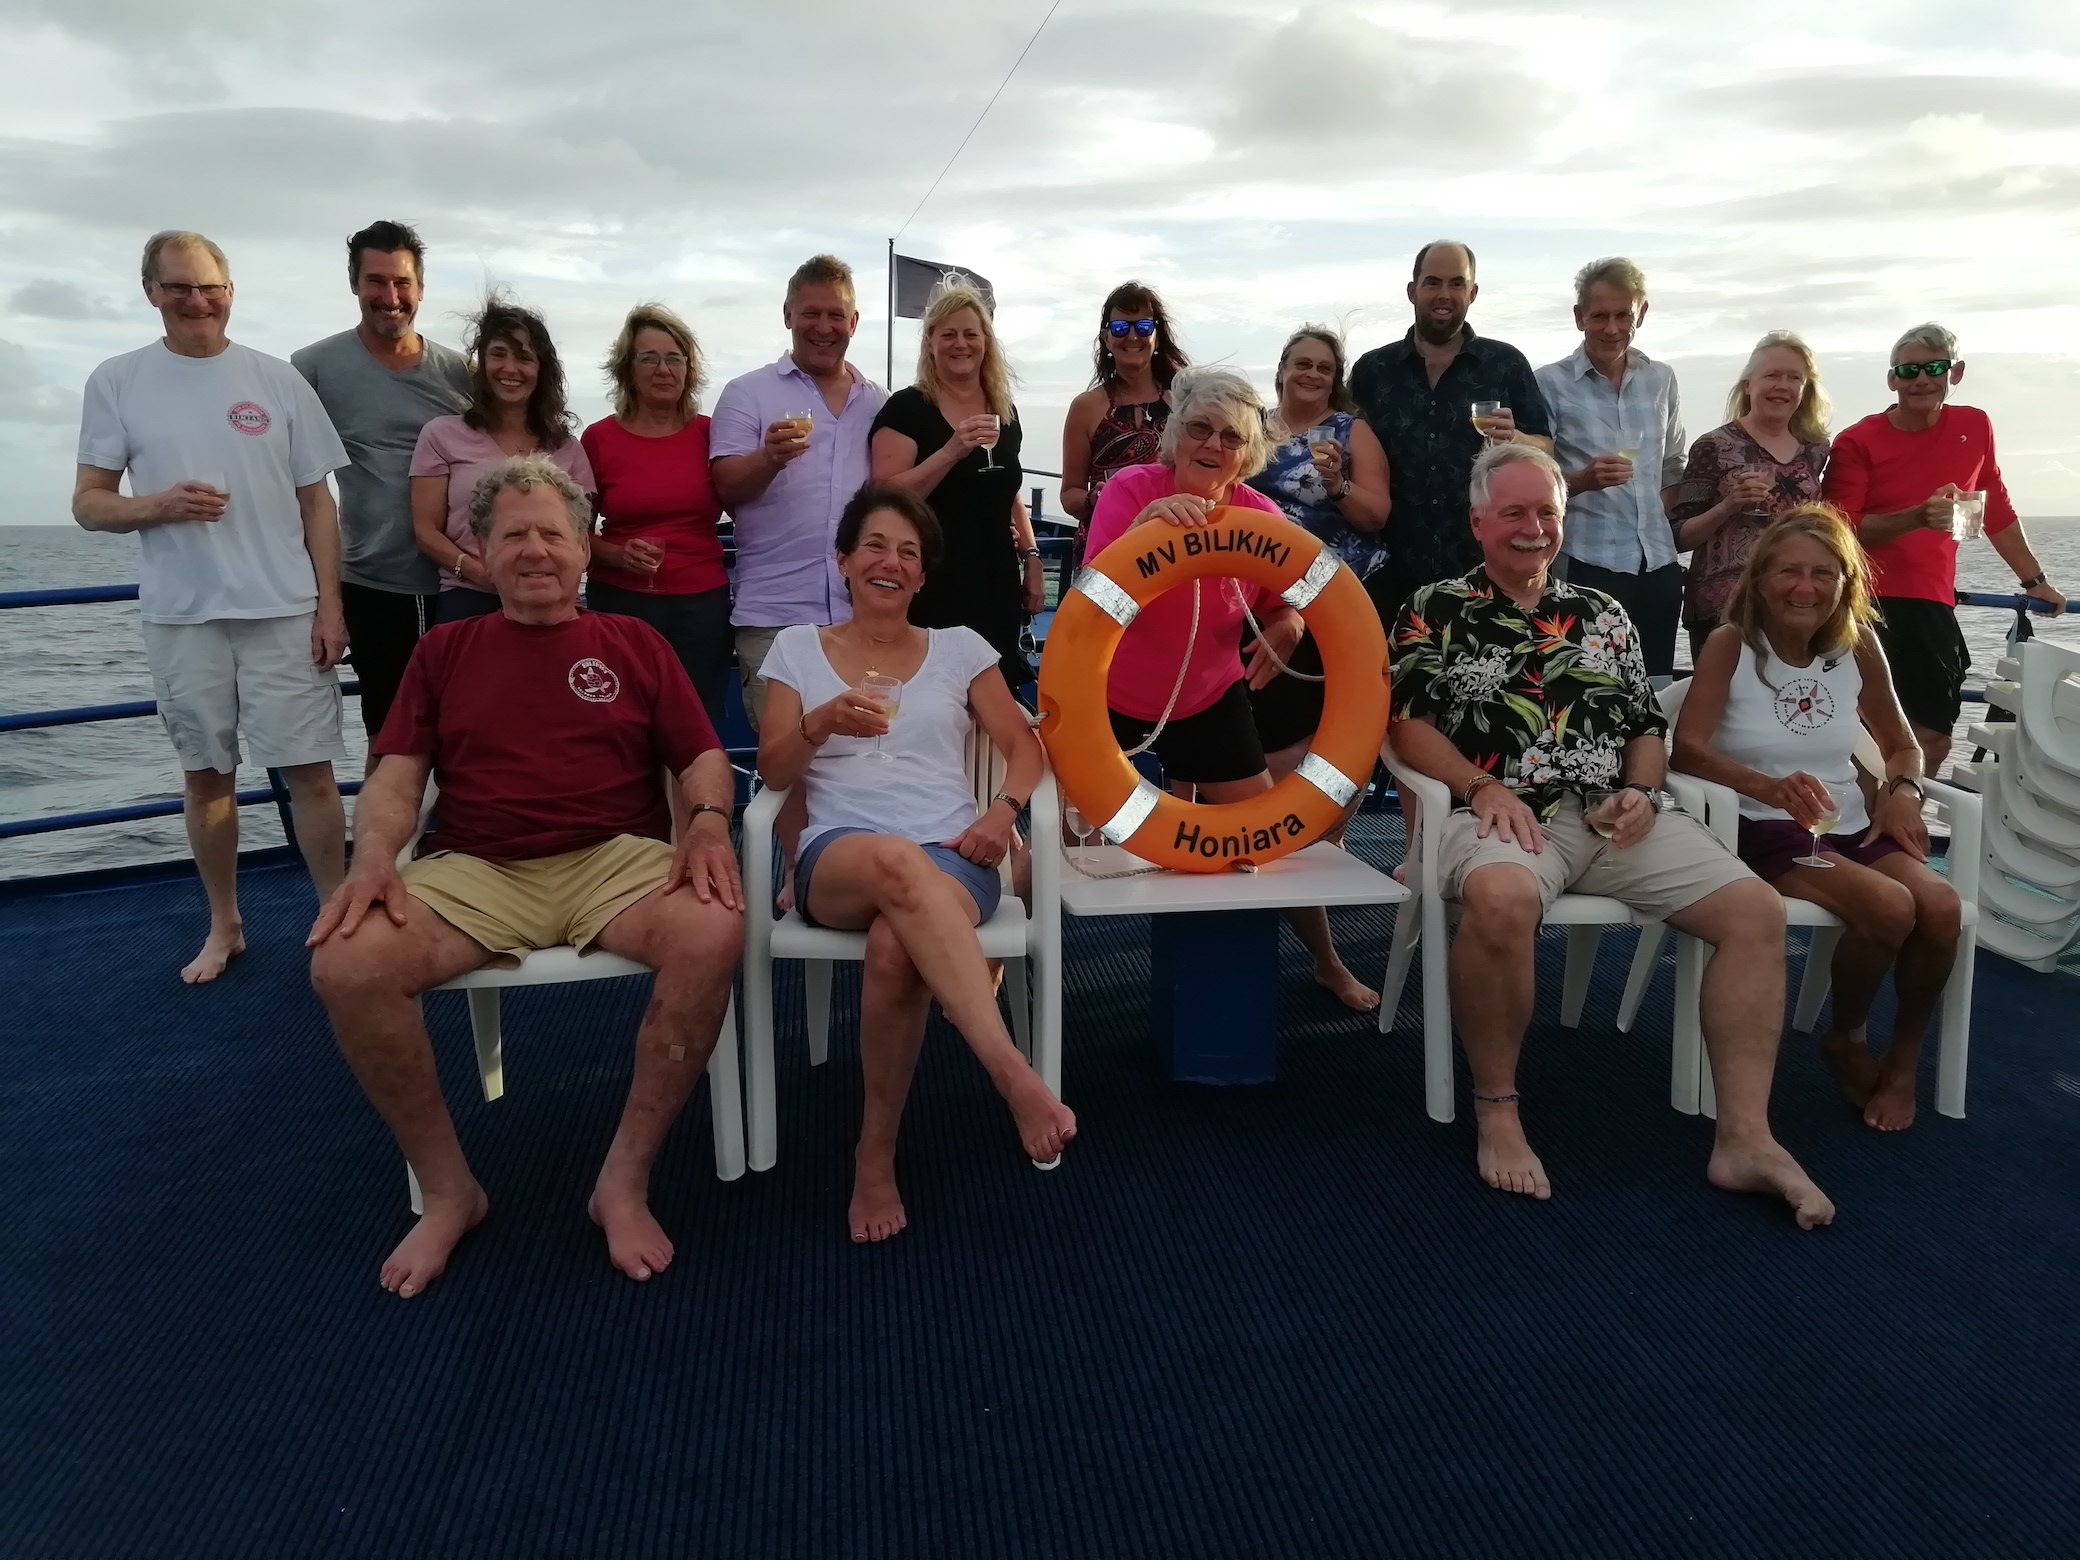 A group shot of all the scuba divers onboard the liveaboard Bilikiki